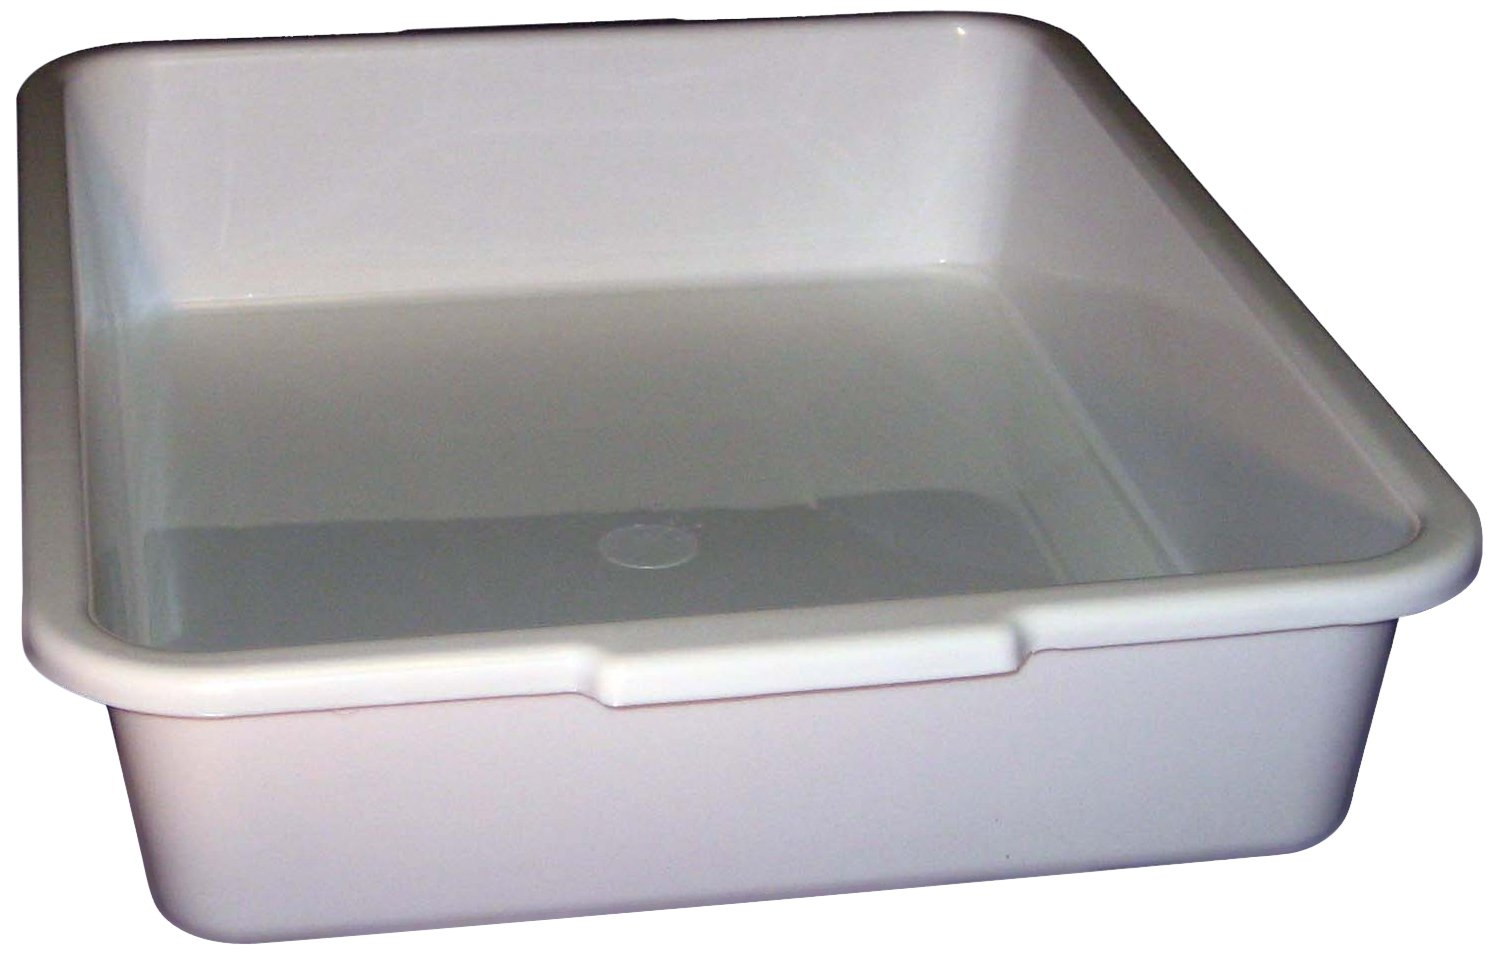 PSC 1007177 General Purpose Trays, Autoclavable, Polypropylene, 15'' x 12'' x 3'', White by PSC